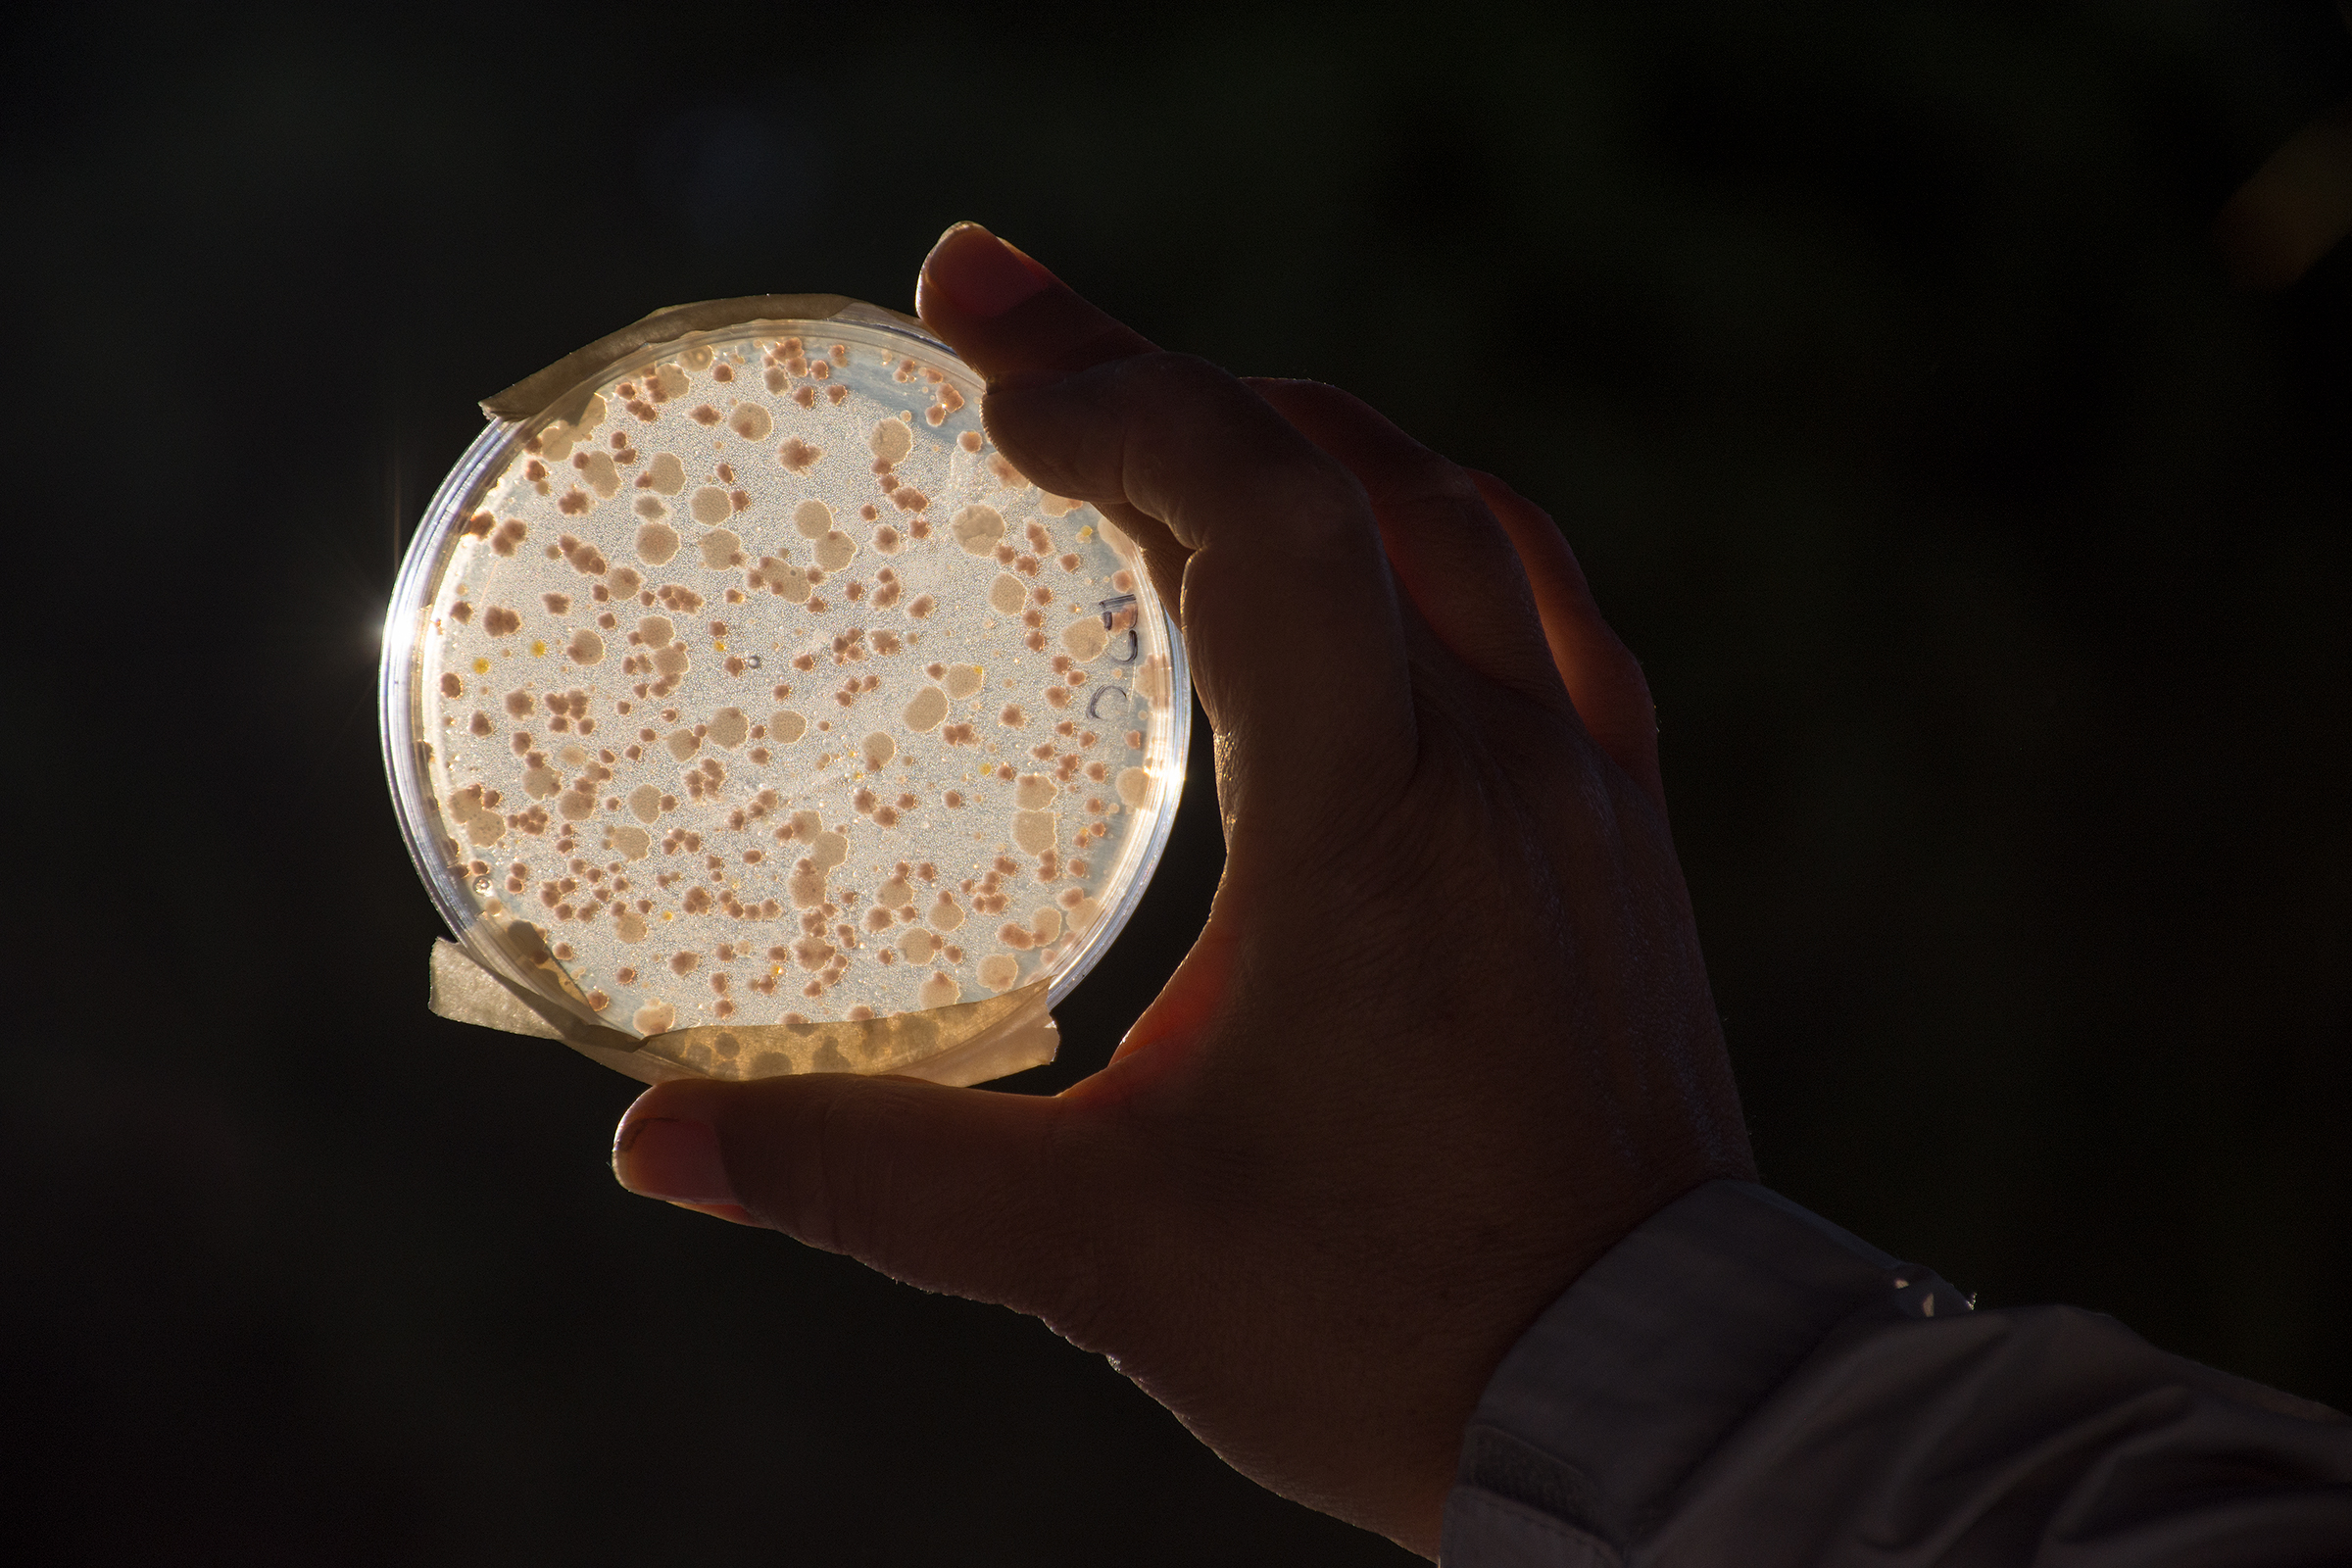 A researcher holds up an agar plate displaying some of the vast microbial diversity found in a single drop of water from the Cuatro Ciénegas basin.